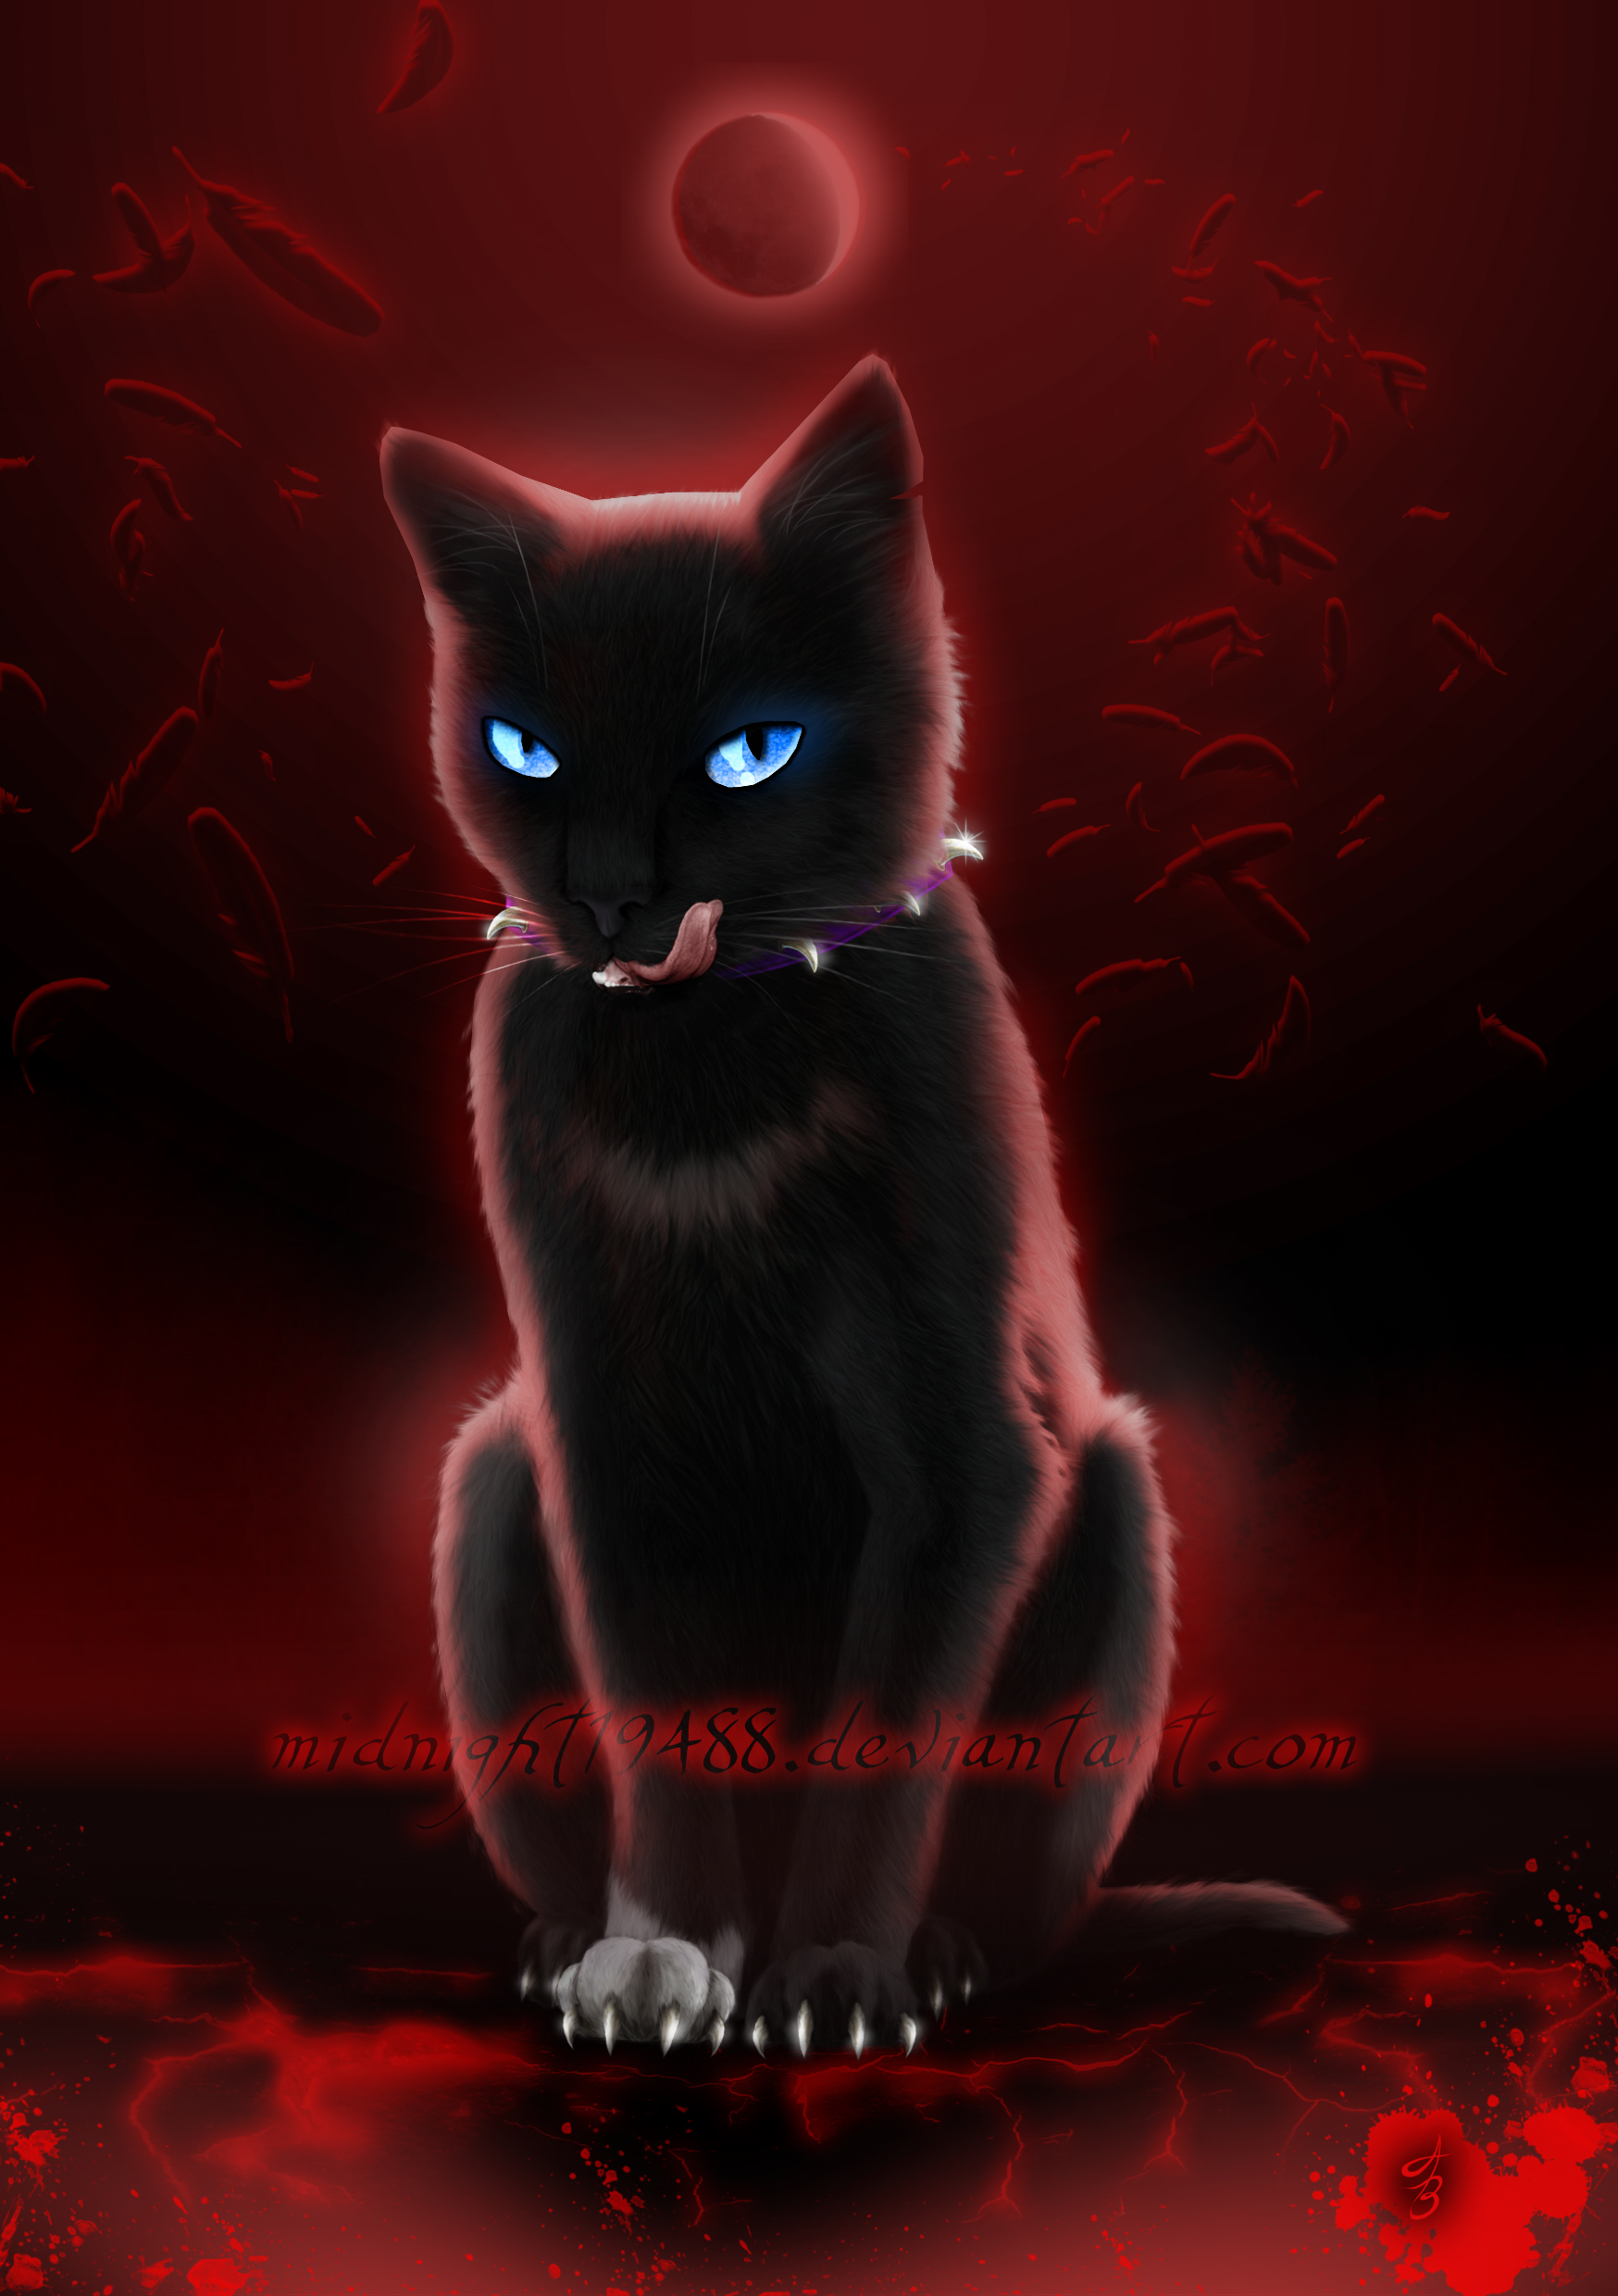 Warrior Cats - Scourge by Midnight19488